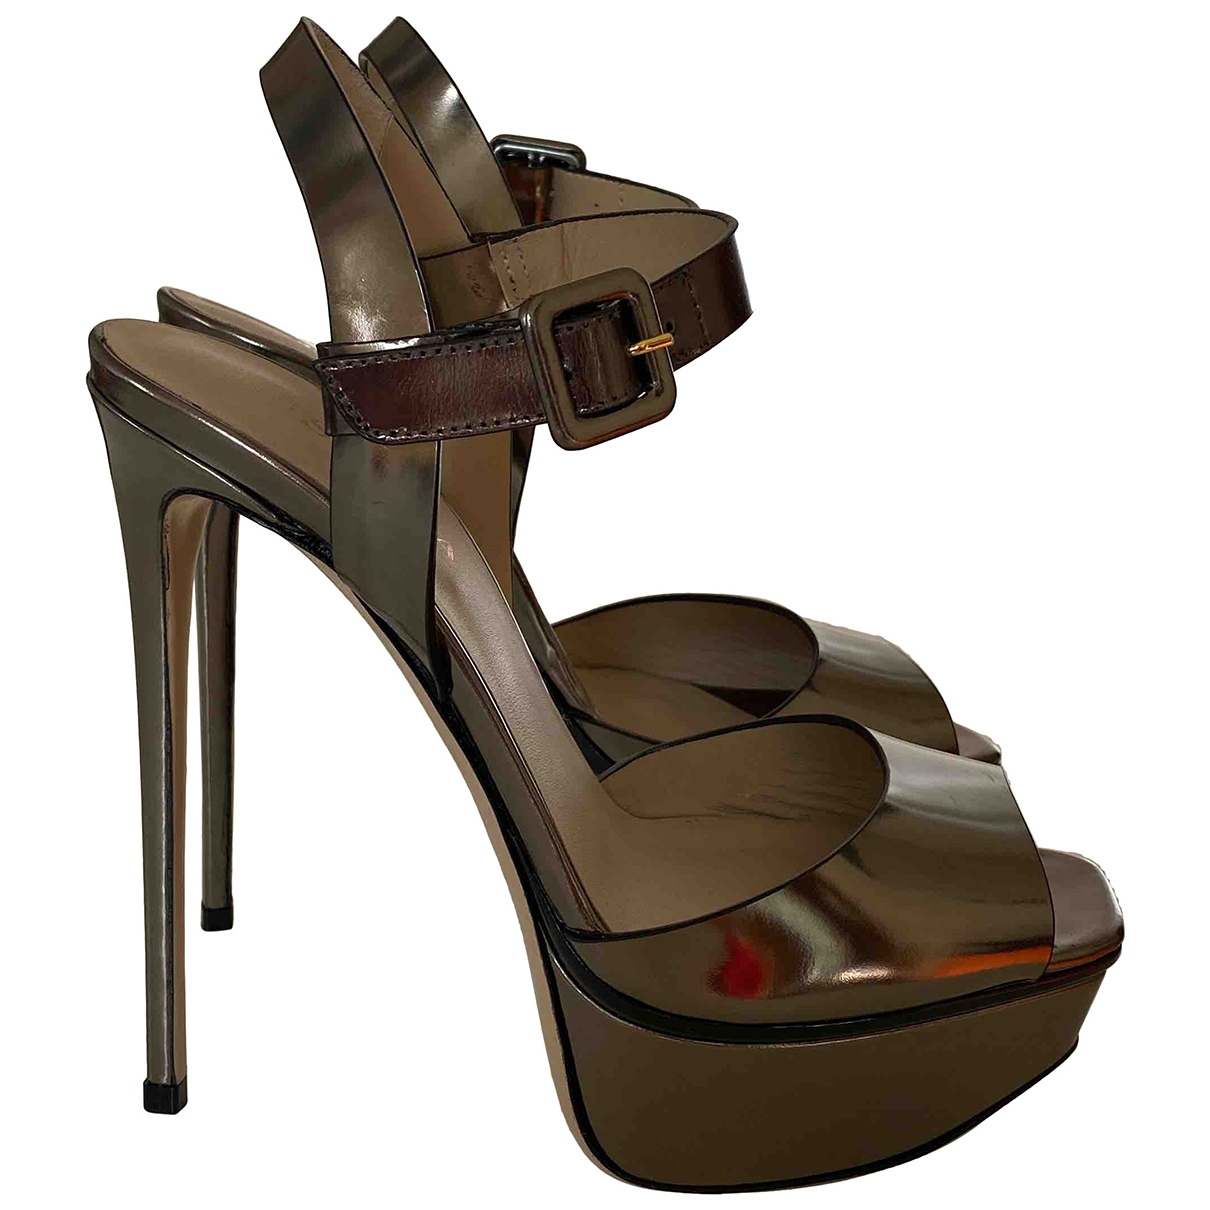 Le Silla \N Silver Leather Sandals for Women 37 EU